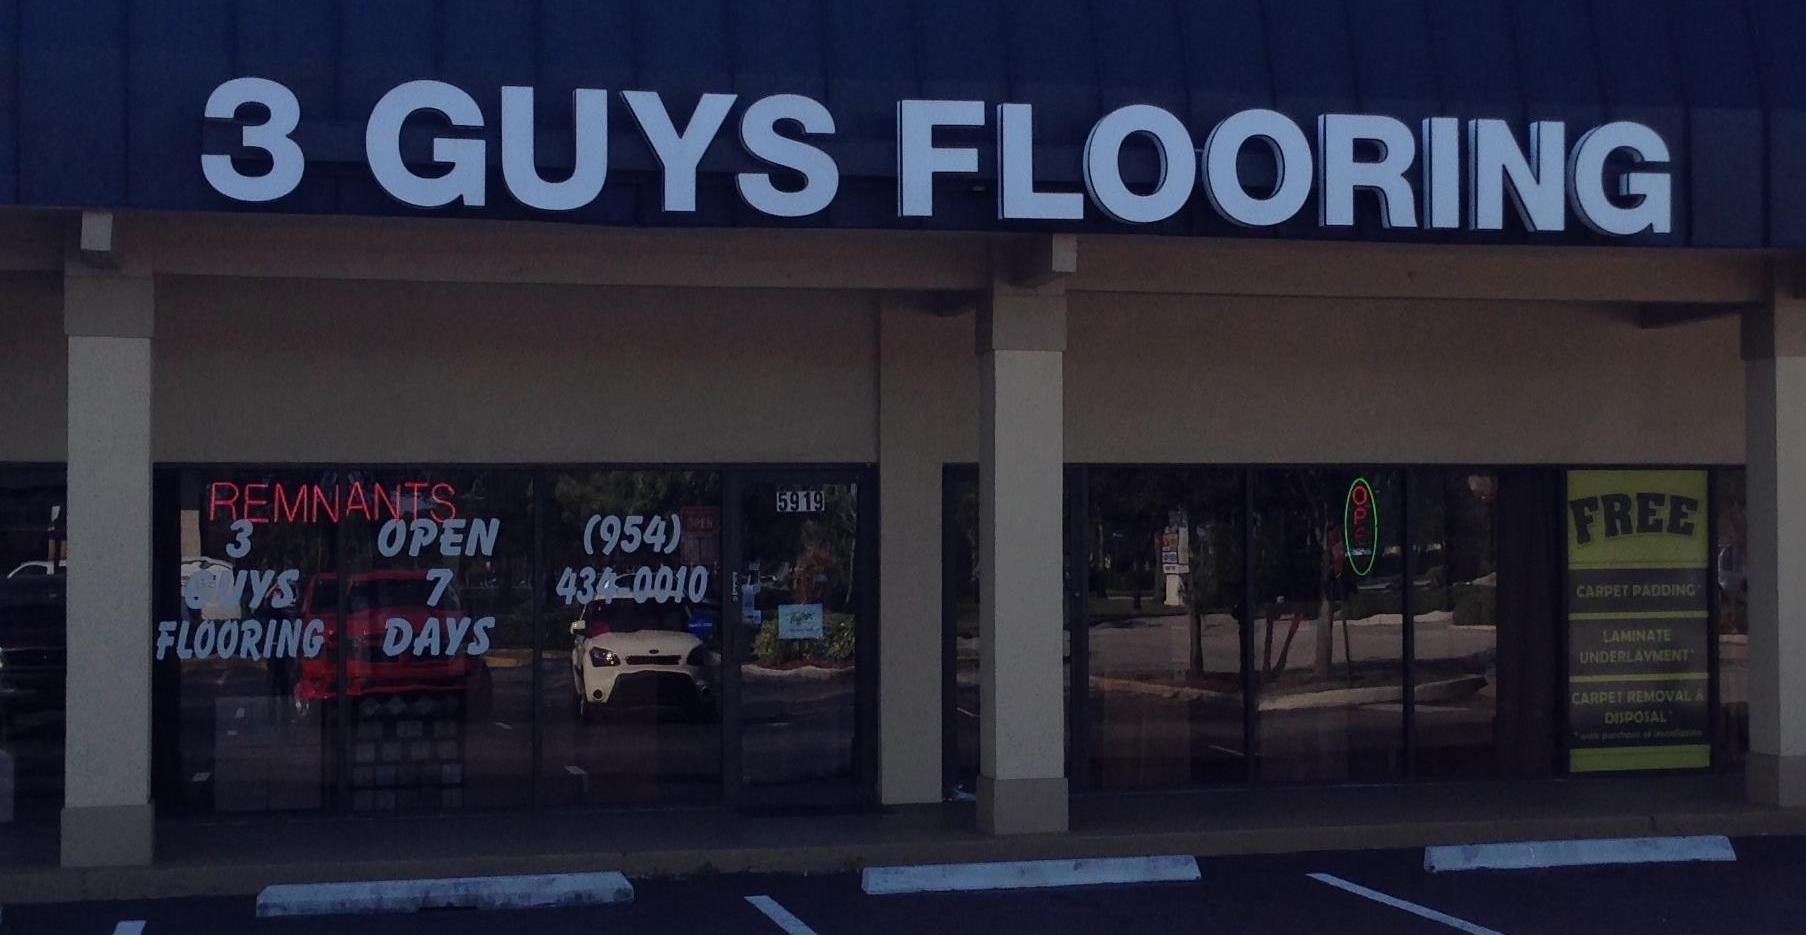 3 Guys Flooring - 5919 S University Dr, Davie, FL 33328